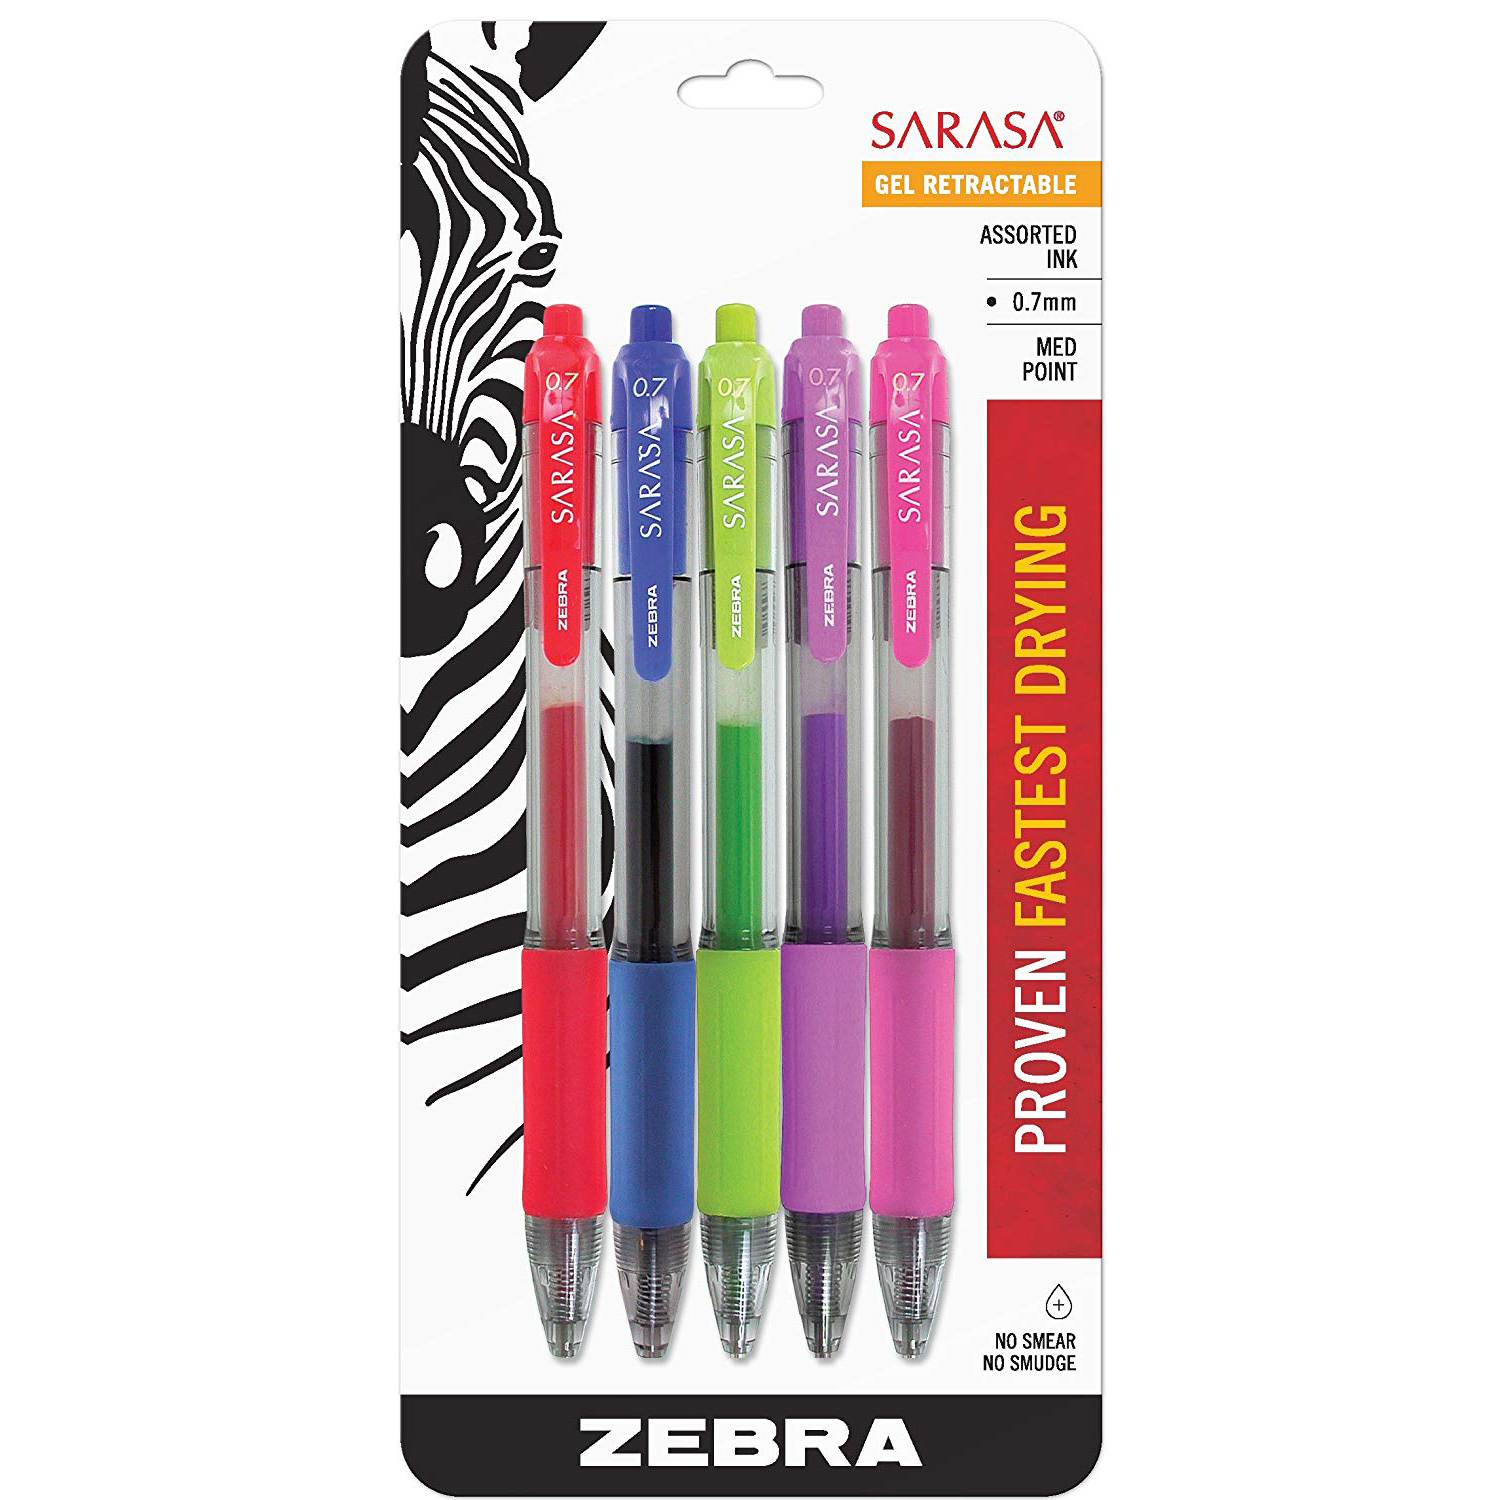 Zebra Sarasa Gel Retractable Pen - Assorted Colors (pkt/5pcs)